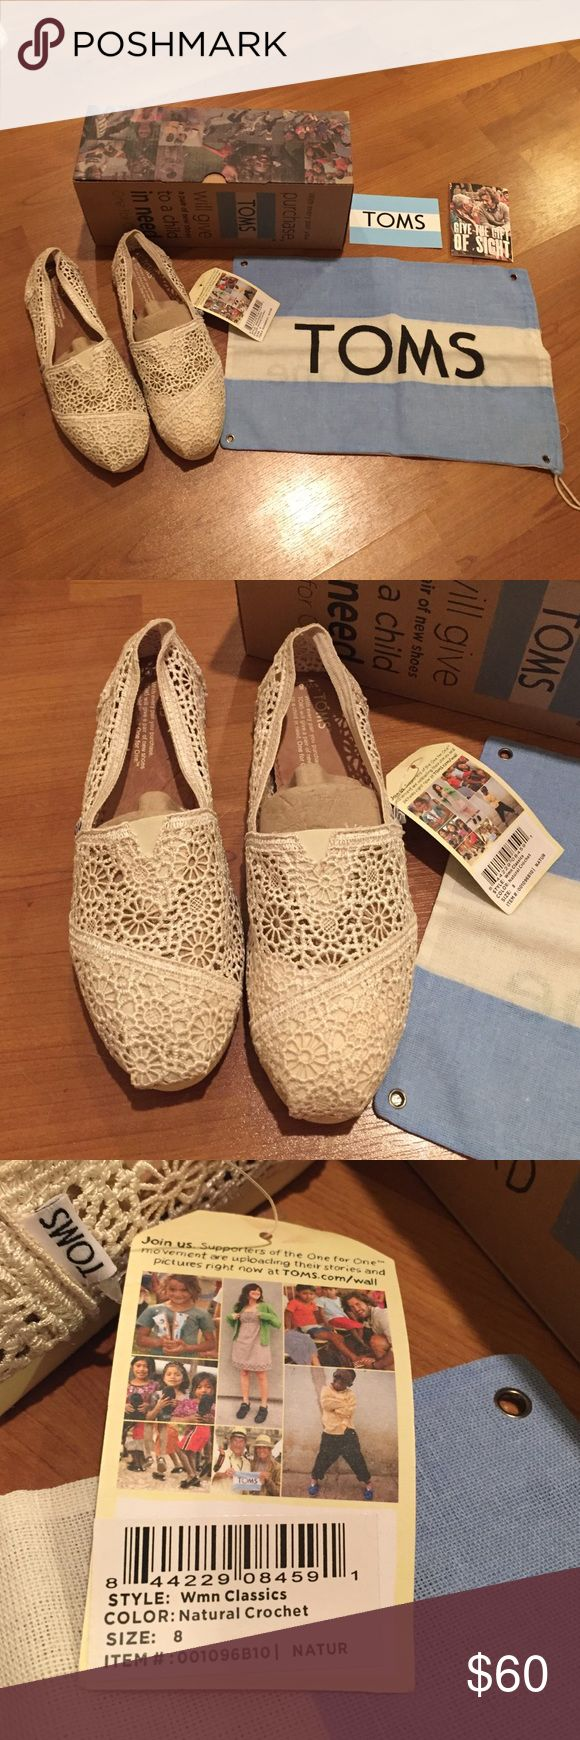 NEW! TOMS Crochet Size 8 NWT TOMS Crochet Shoes. Never wore them. They're half a size too big for me. They are in brand new condition with tags attached.  No trades, please  Price firm. TOMS Shoes Flats & Loafers